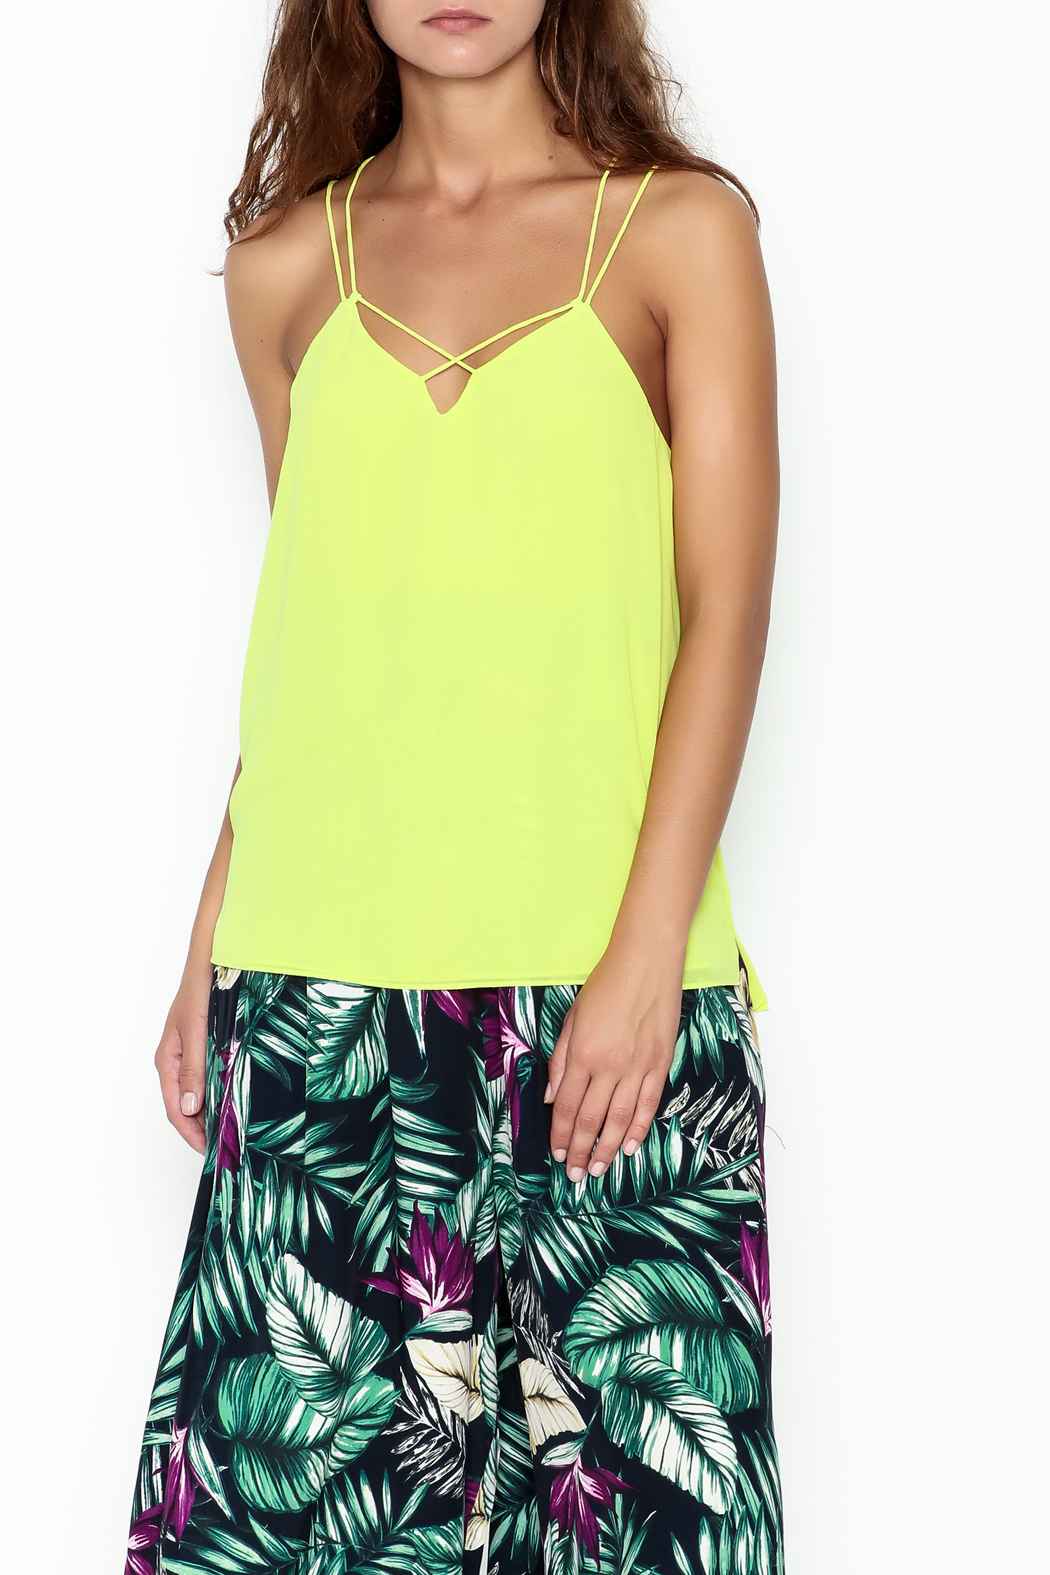 y&i clothing boutique Cami Top - Main Image